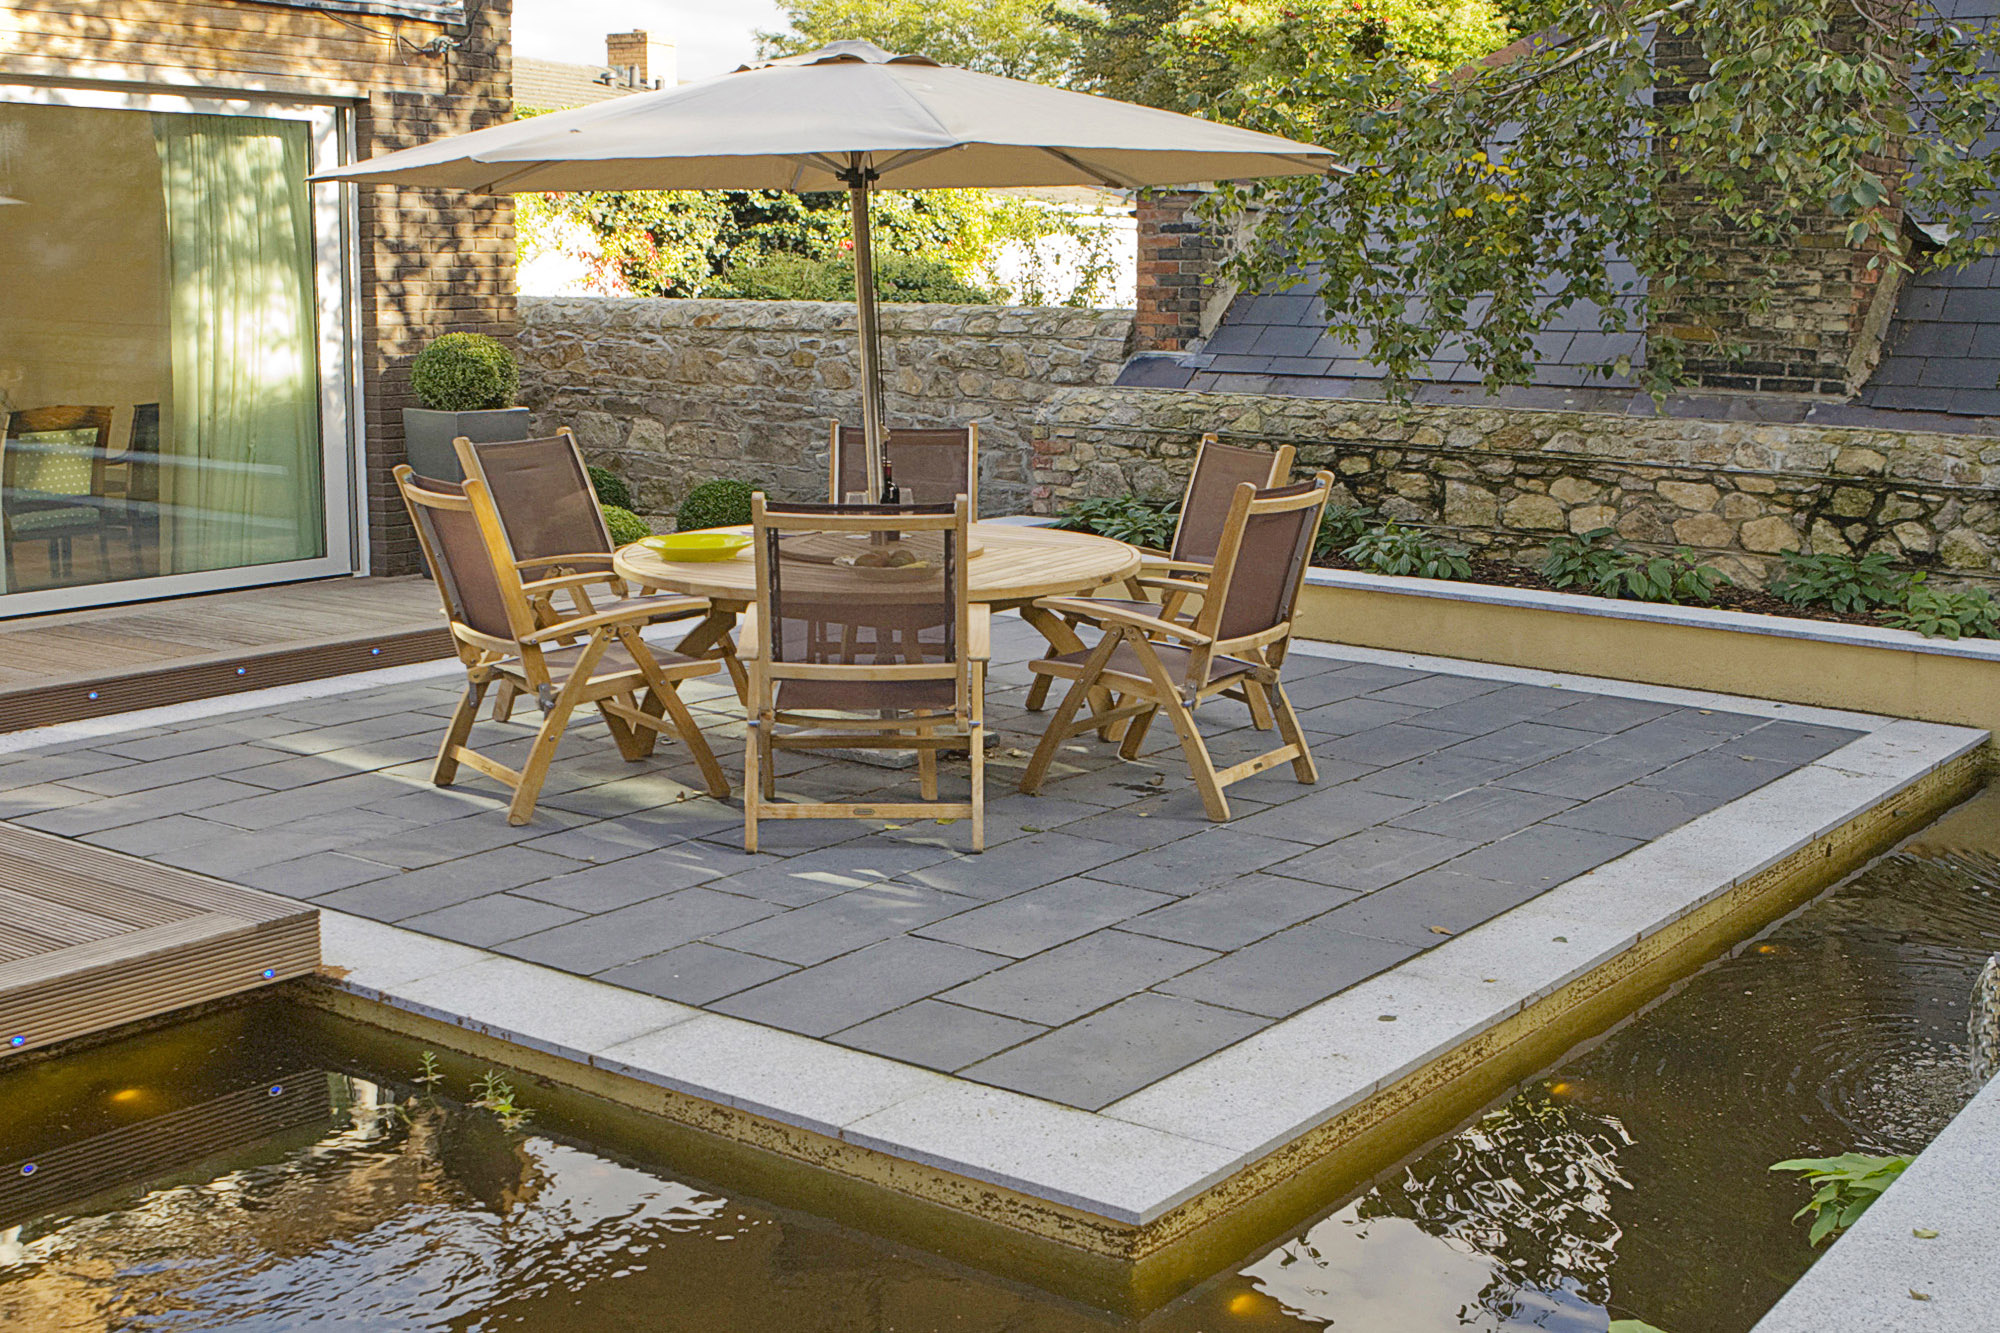 Water Features For Your Garden Design In Dublin Or Wicklow. Patio Deck Estimator. Patio World Maitland. Patio Table 30 X 30. Rustic Patio Decor. Patio Pavers Vero Beach. Patio Home Theater. Diy Patio Dog Potty. Covered Patio With Grill